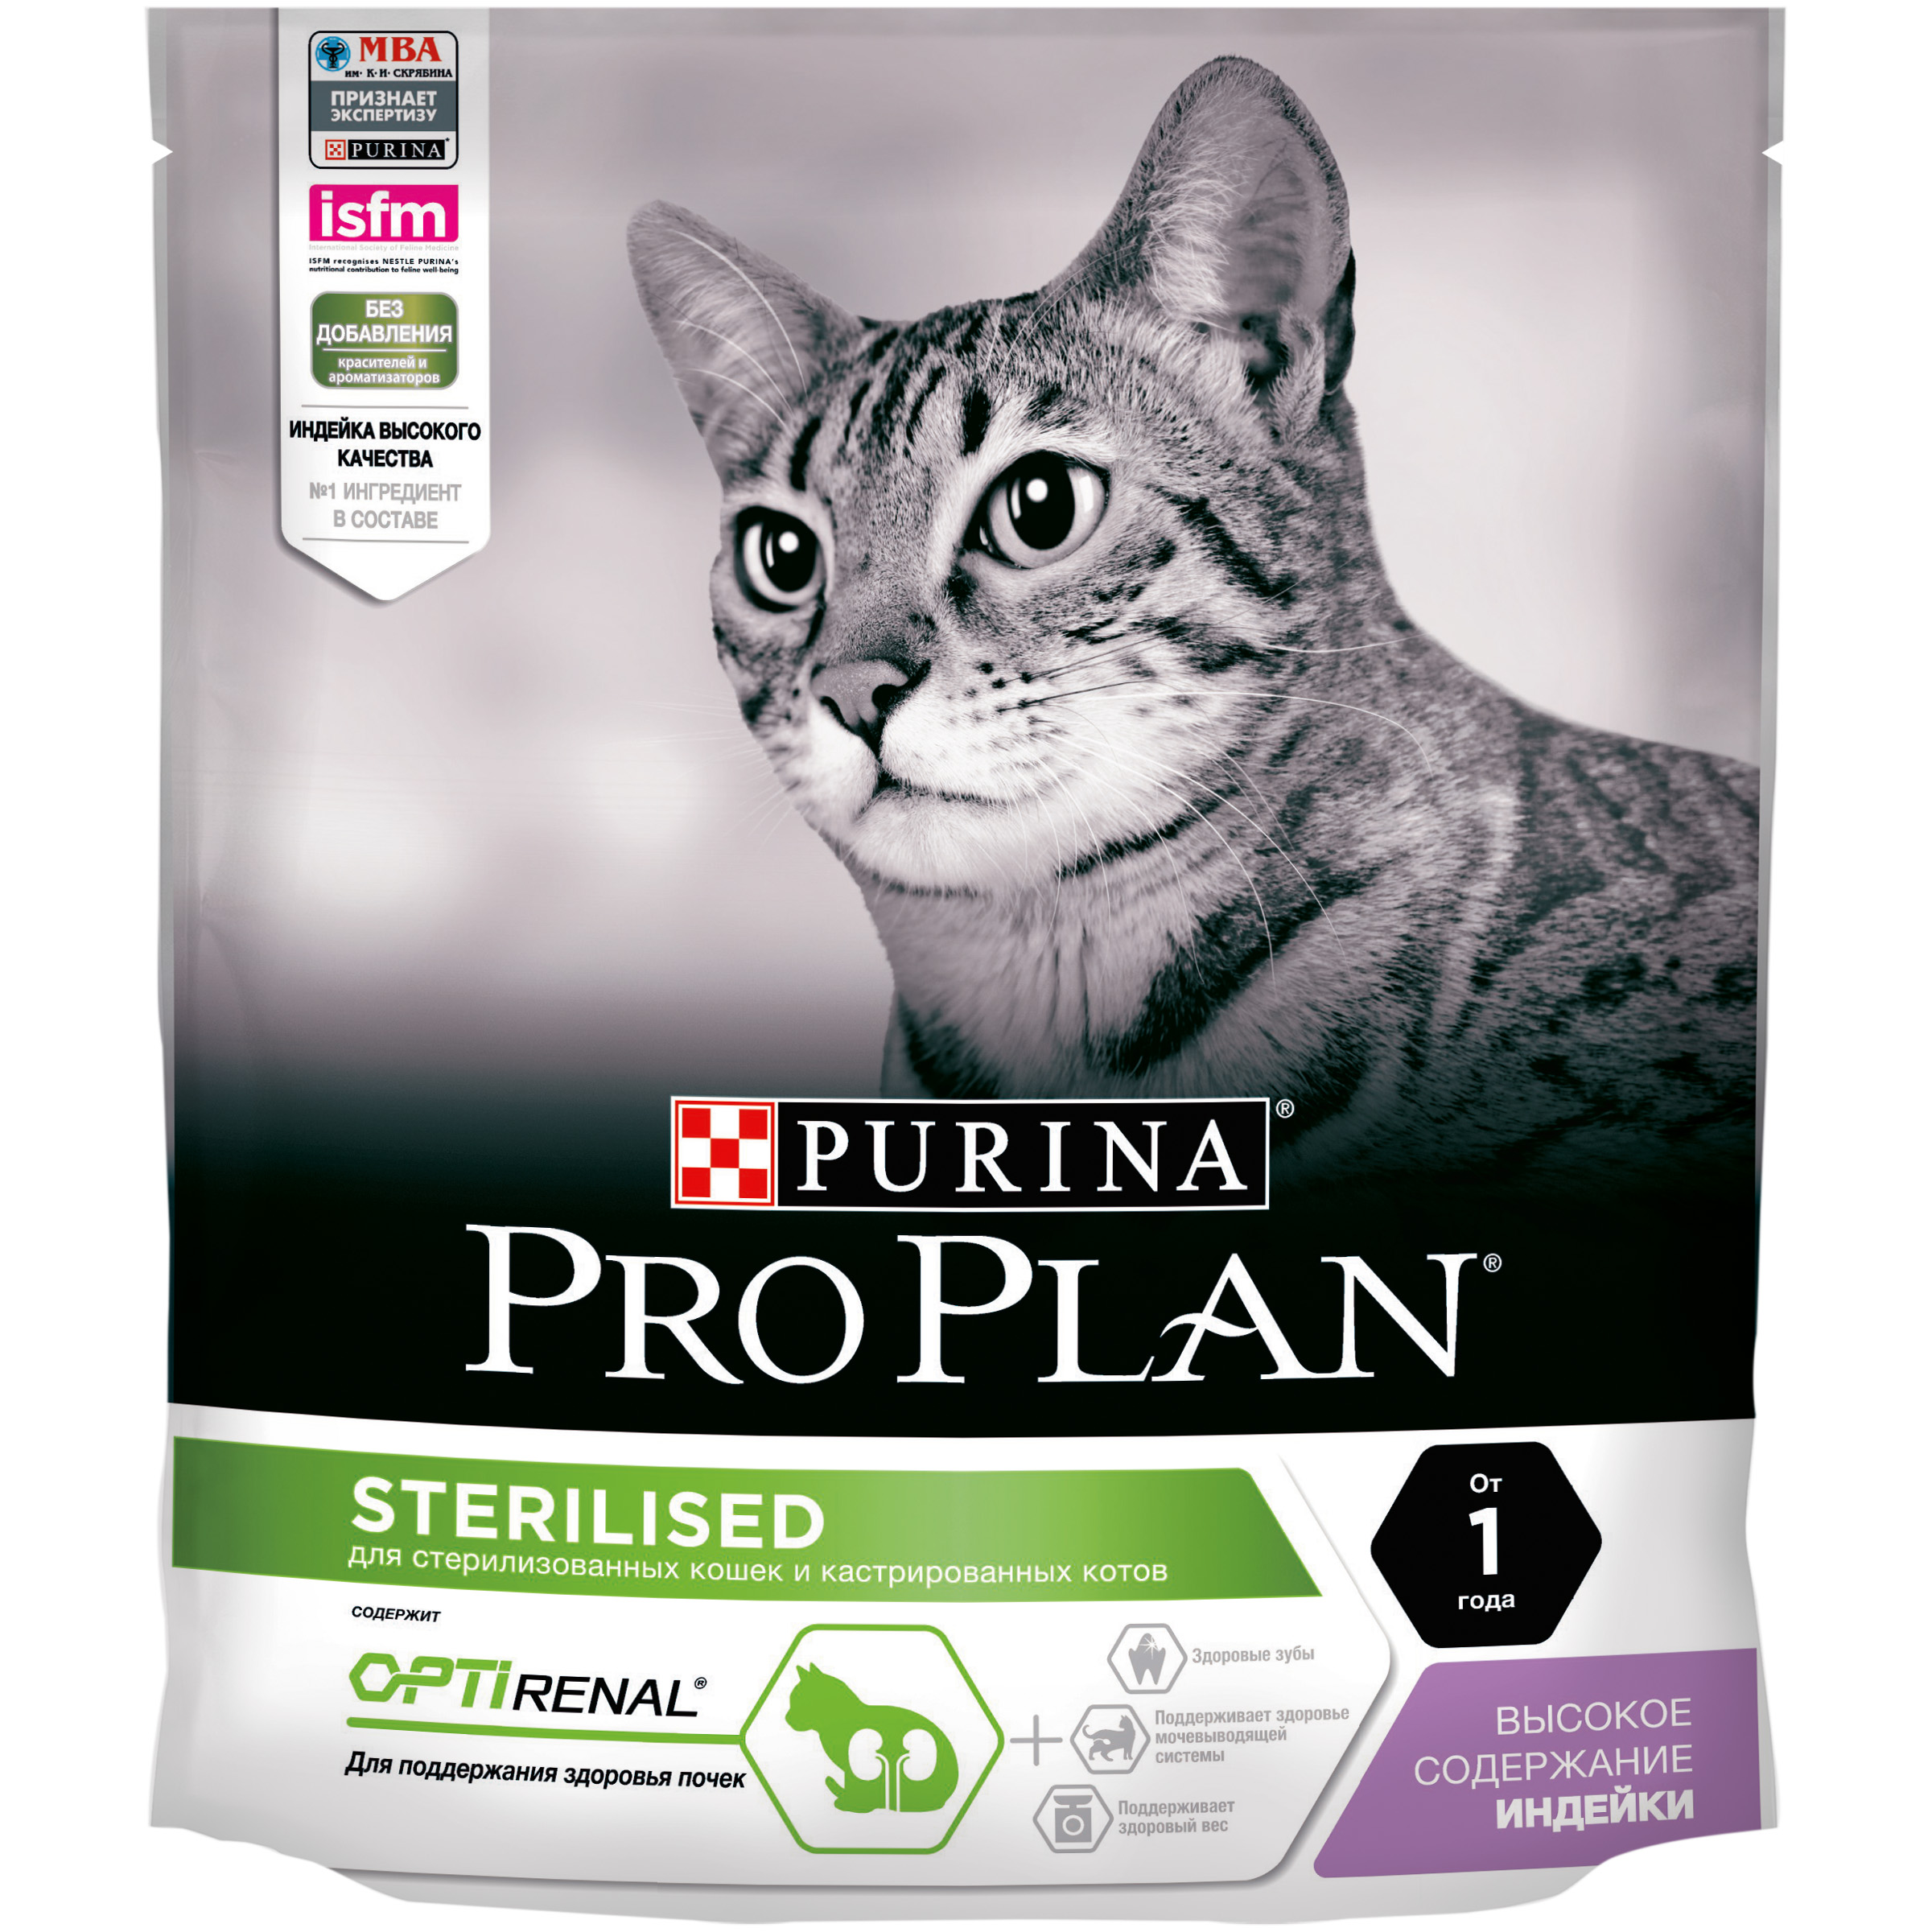 Purina Pro Plan dry food for sterilized cats and neutered cats with turkey, Package, 400 g